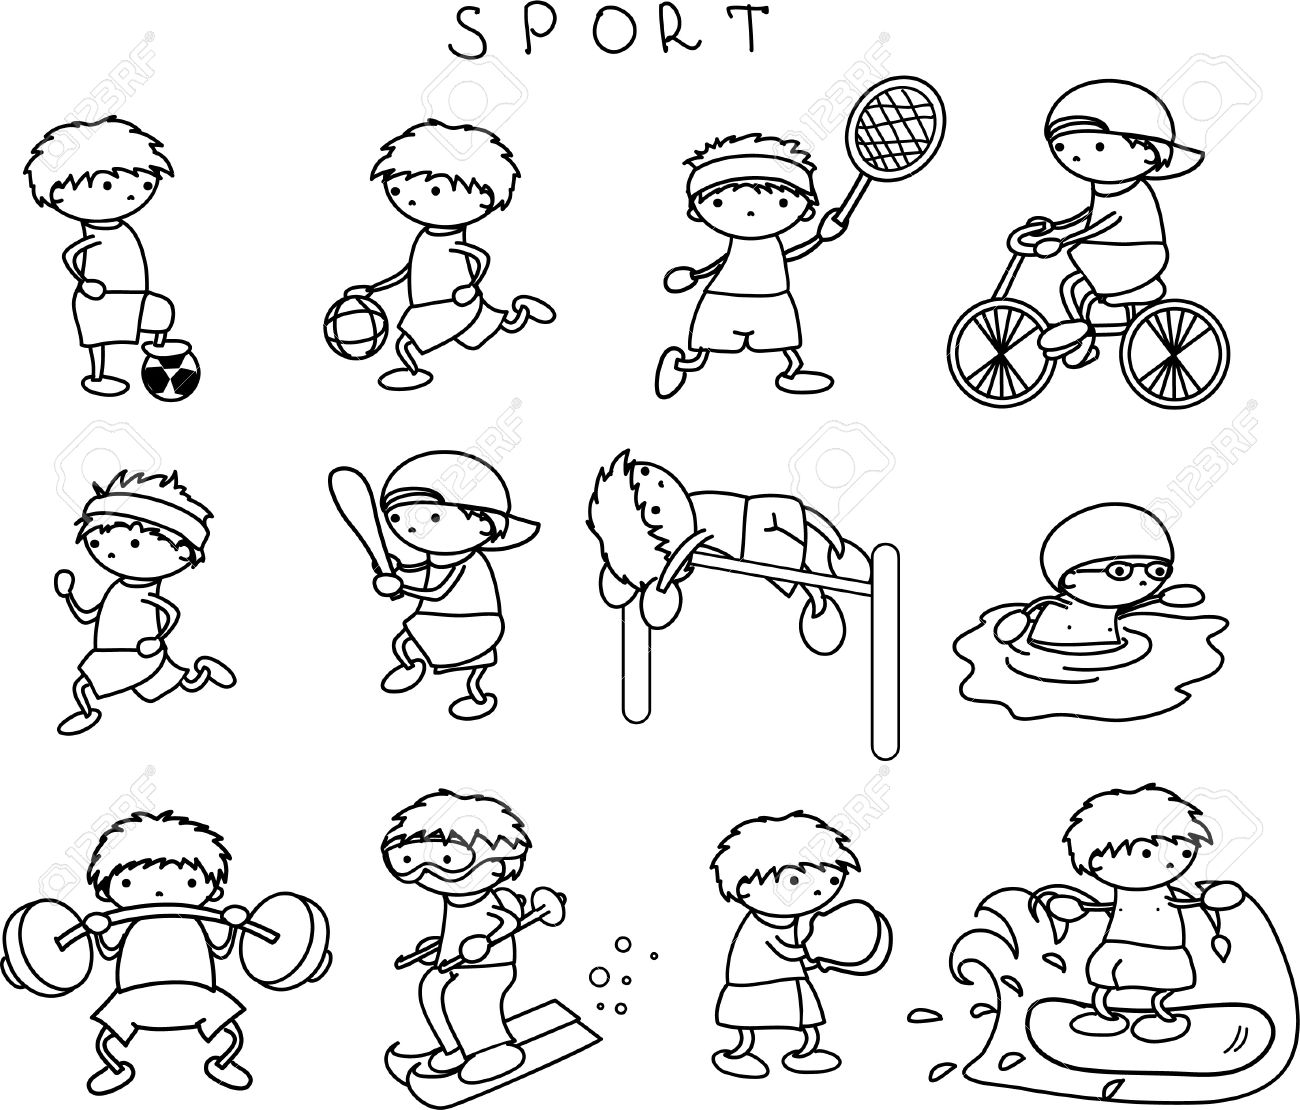 sports drawing for kids at getdrawings com free for football clip art free download football clip art free black and white